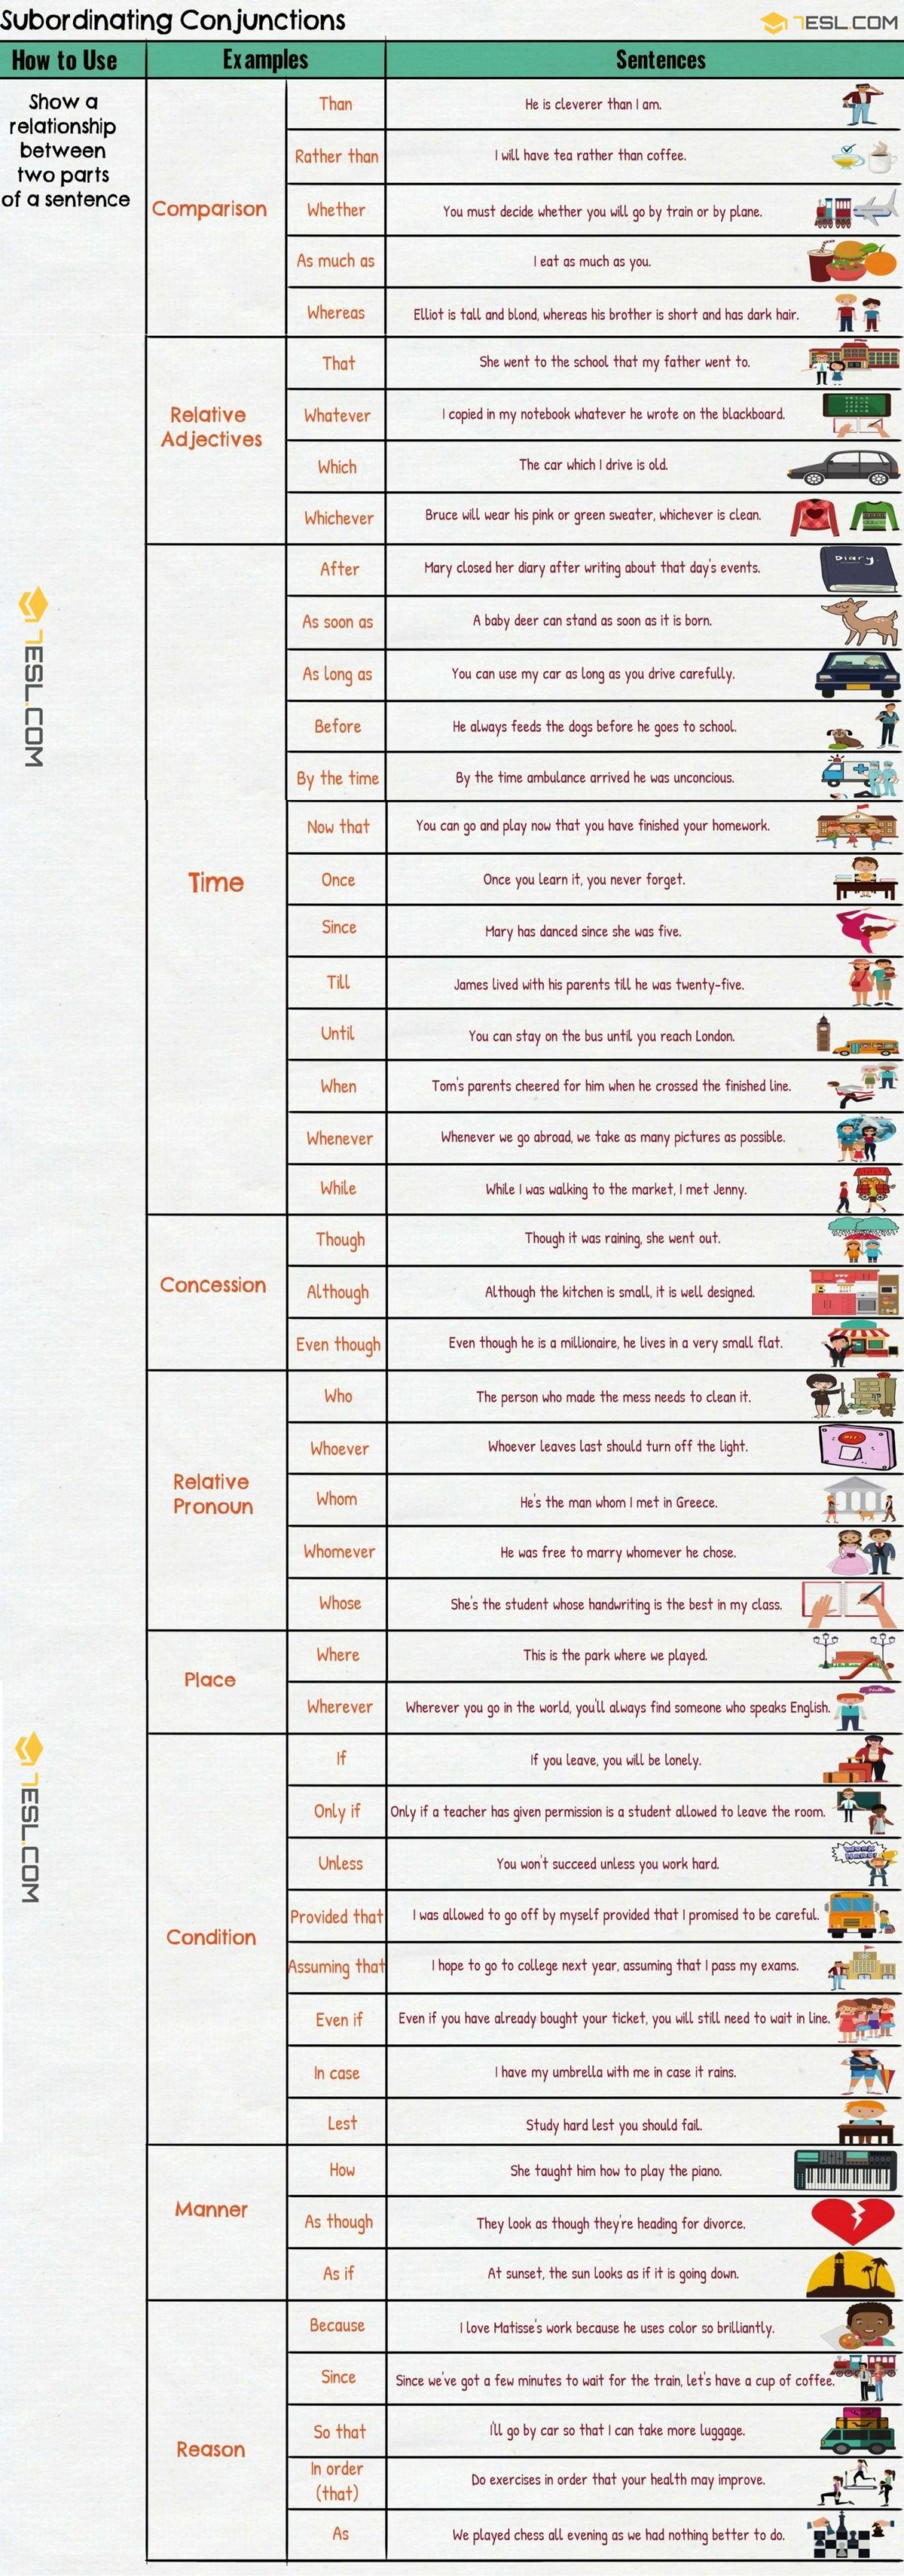 Subordinating Conjunctions Useful List Amp Examples